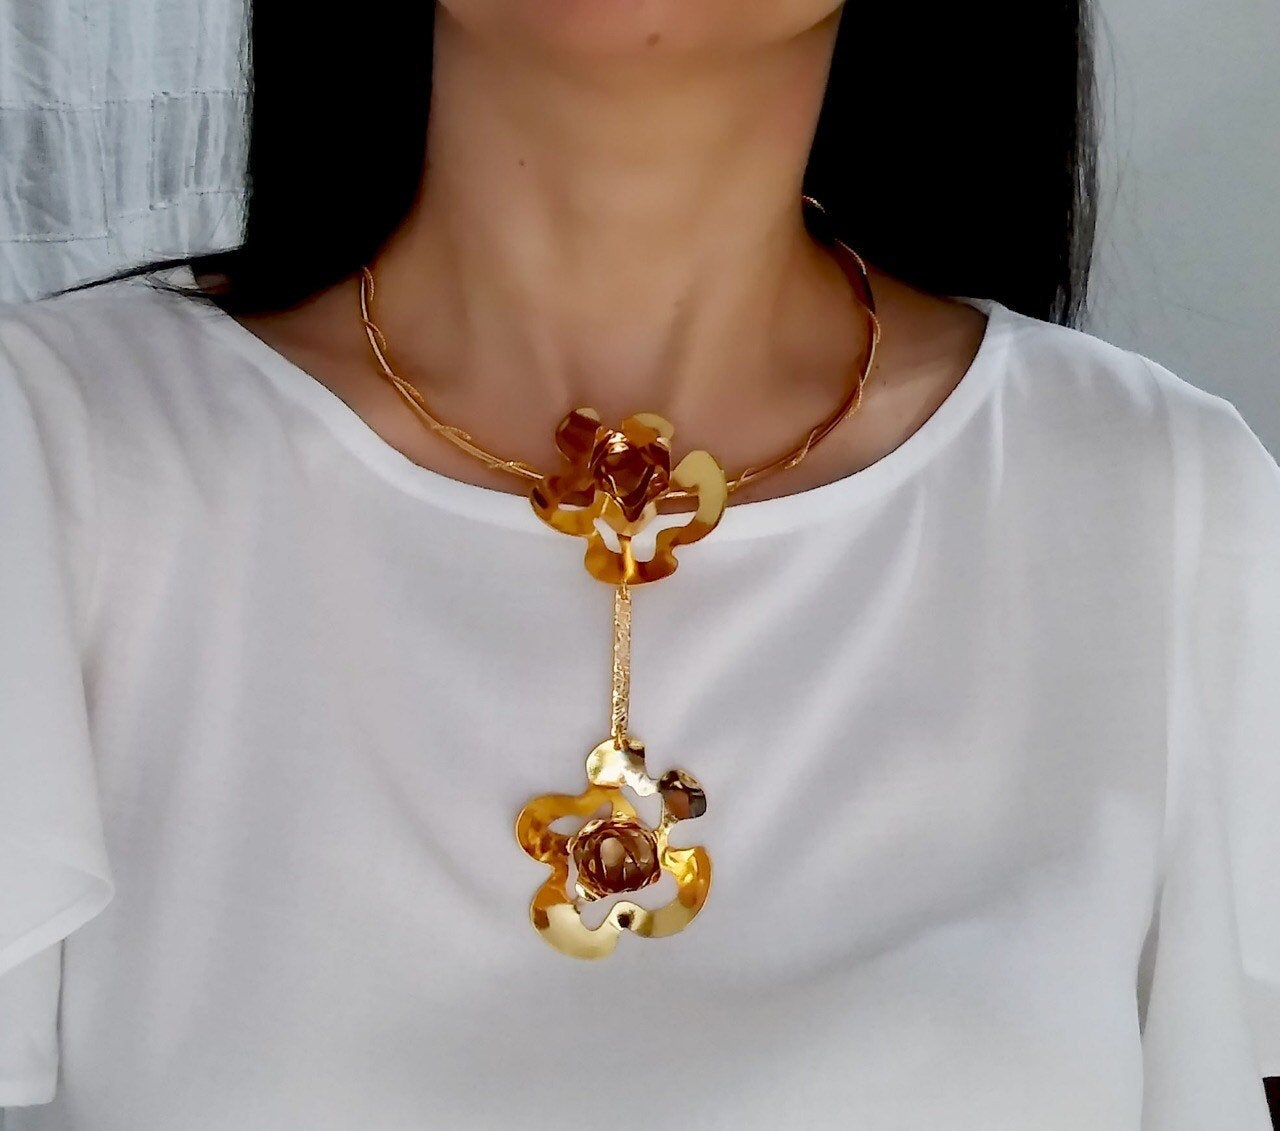 Unique handmade necklace in bronze double gold plated in 24k gold